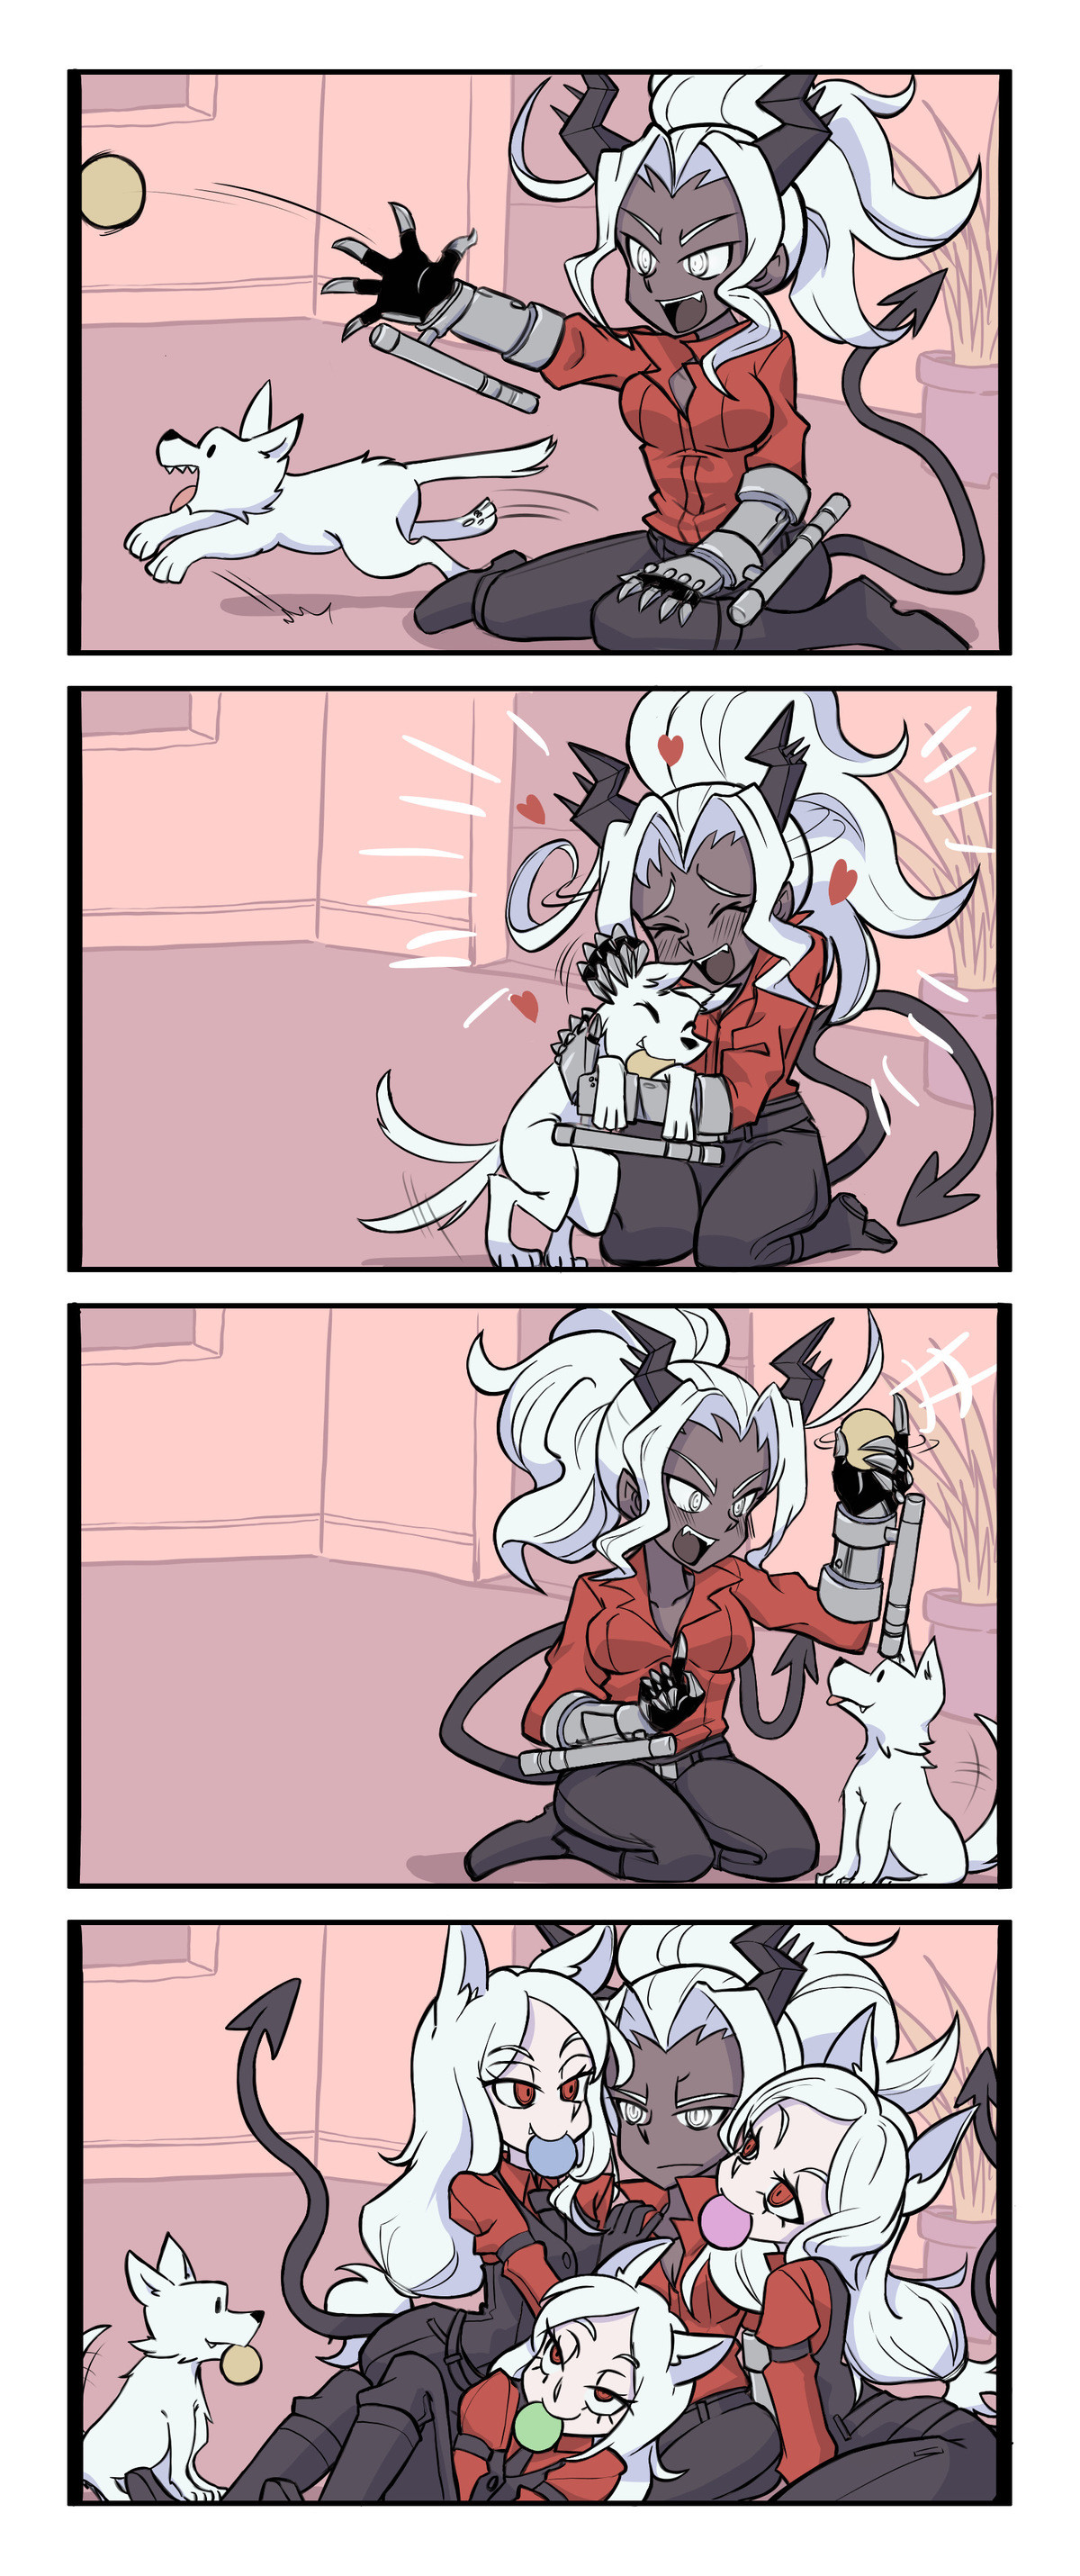 Judgment playing with a Dog. .. Judgement being a secret softie is my favorite. @spadeofaces